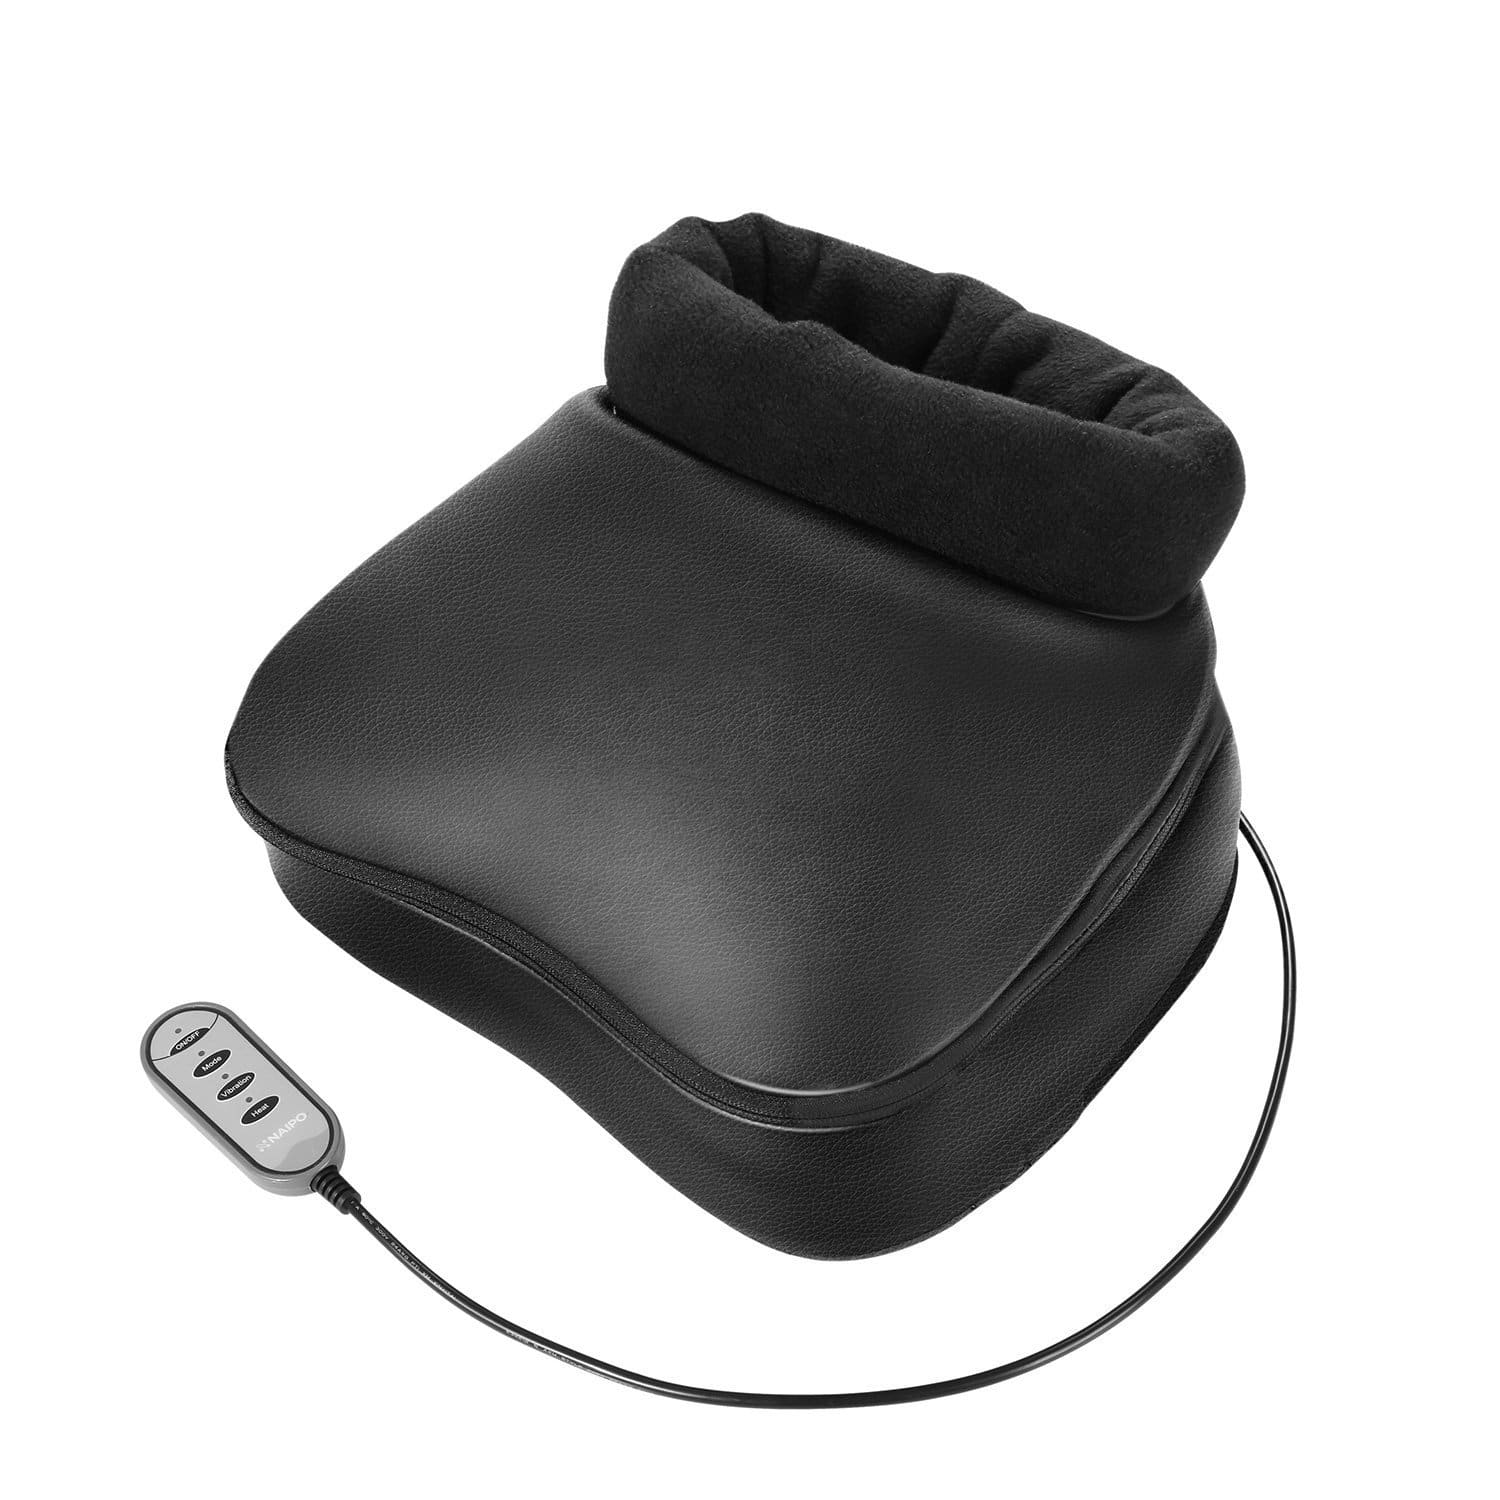 Naipo Foot Massager with Kneading and Heat - NAIPO